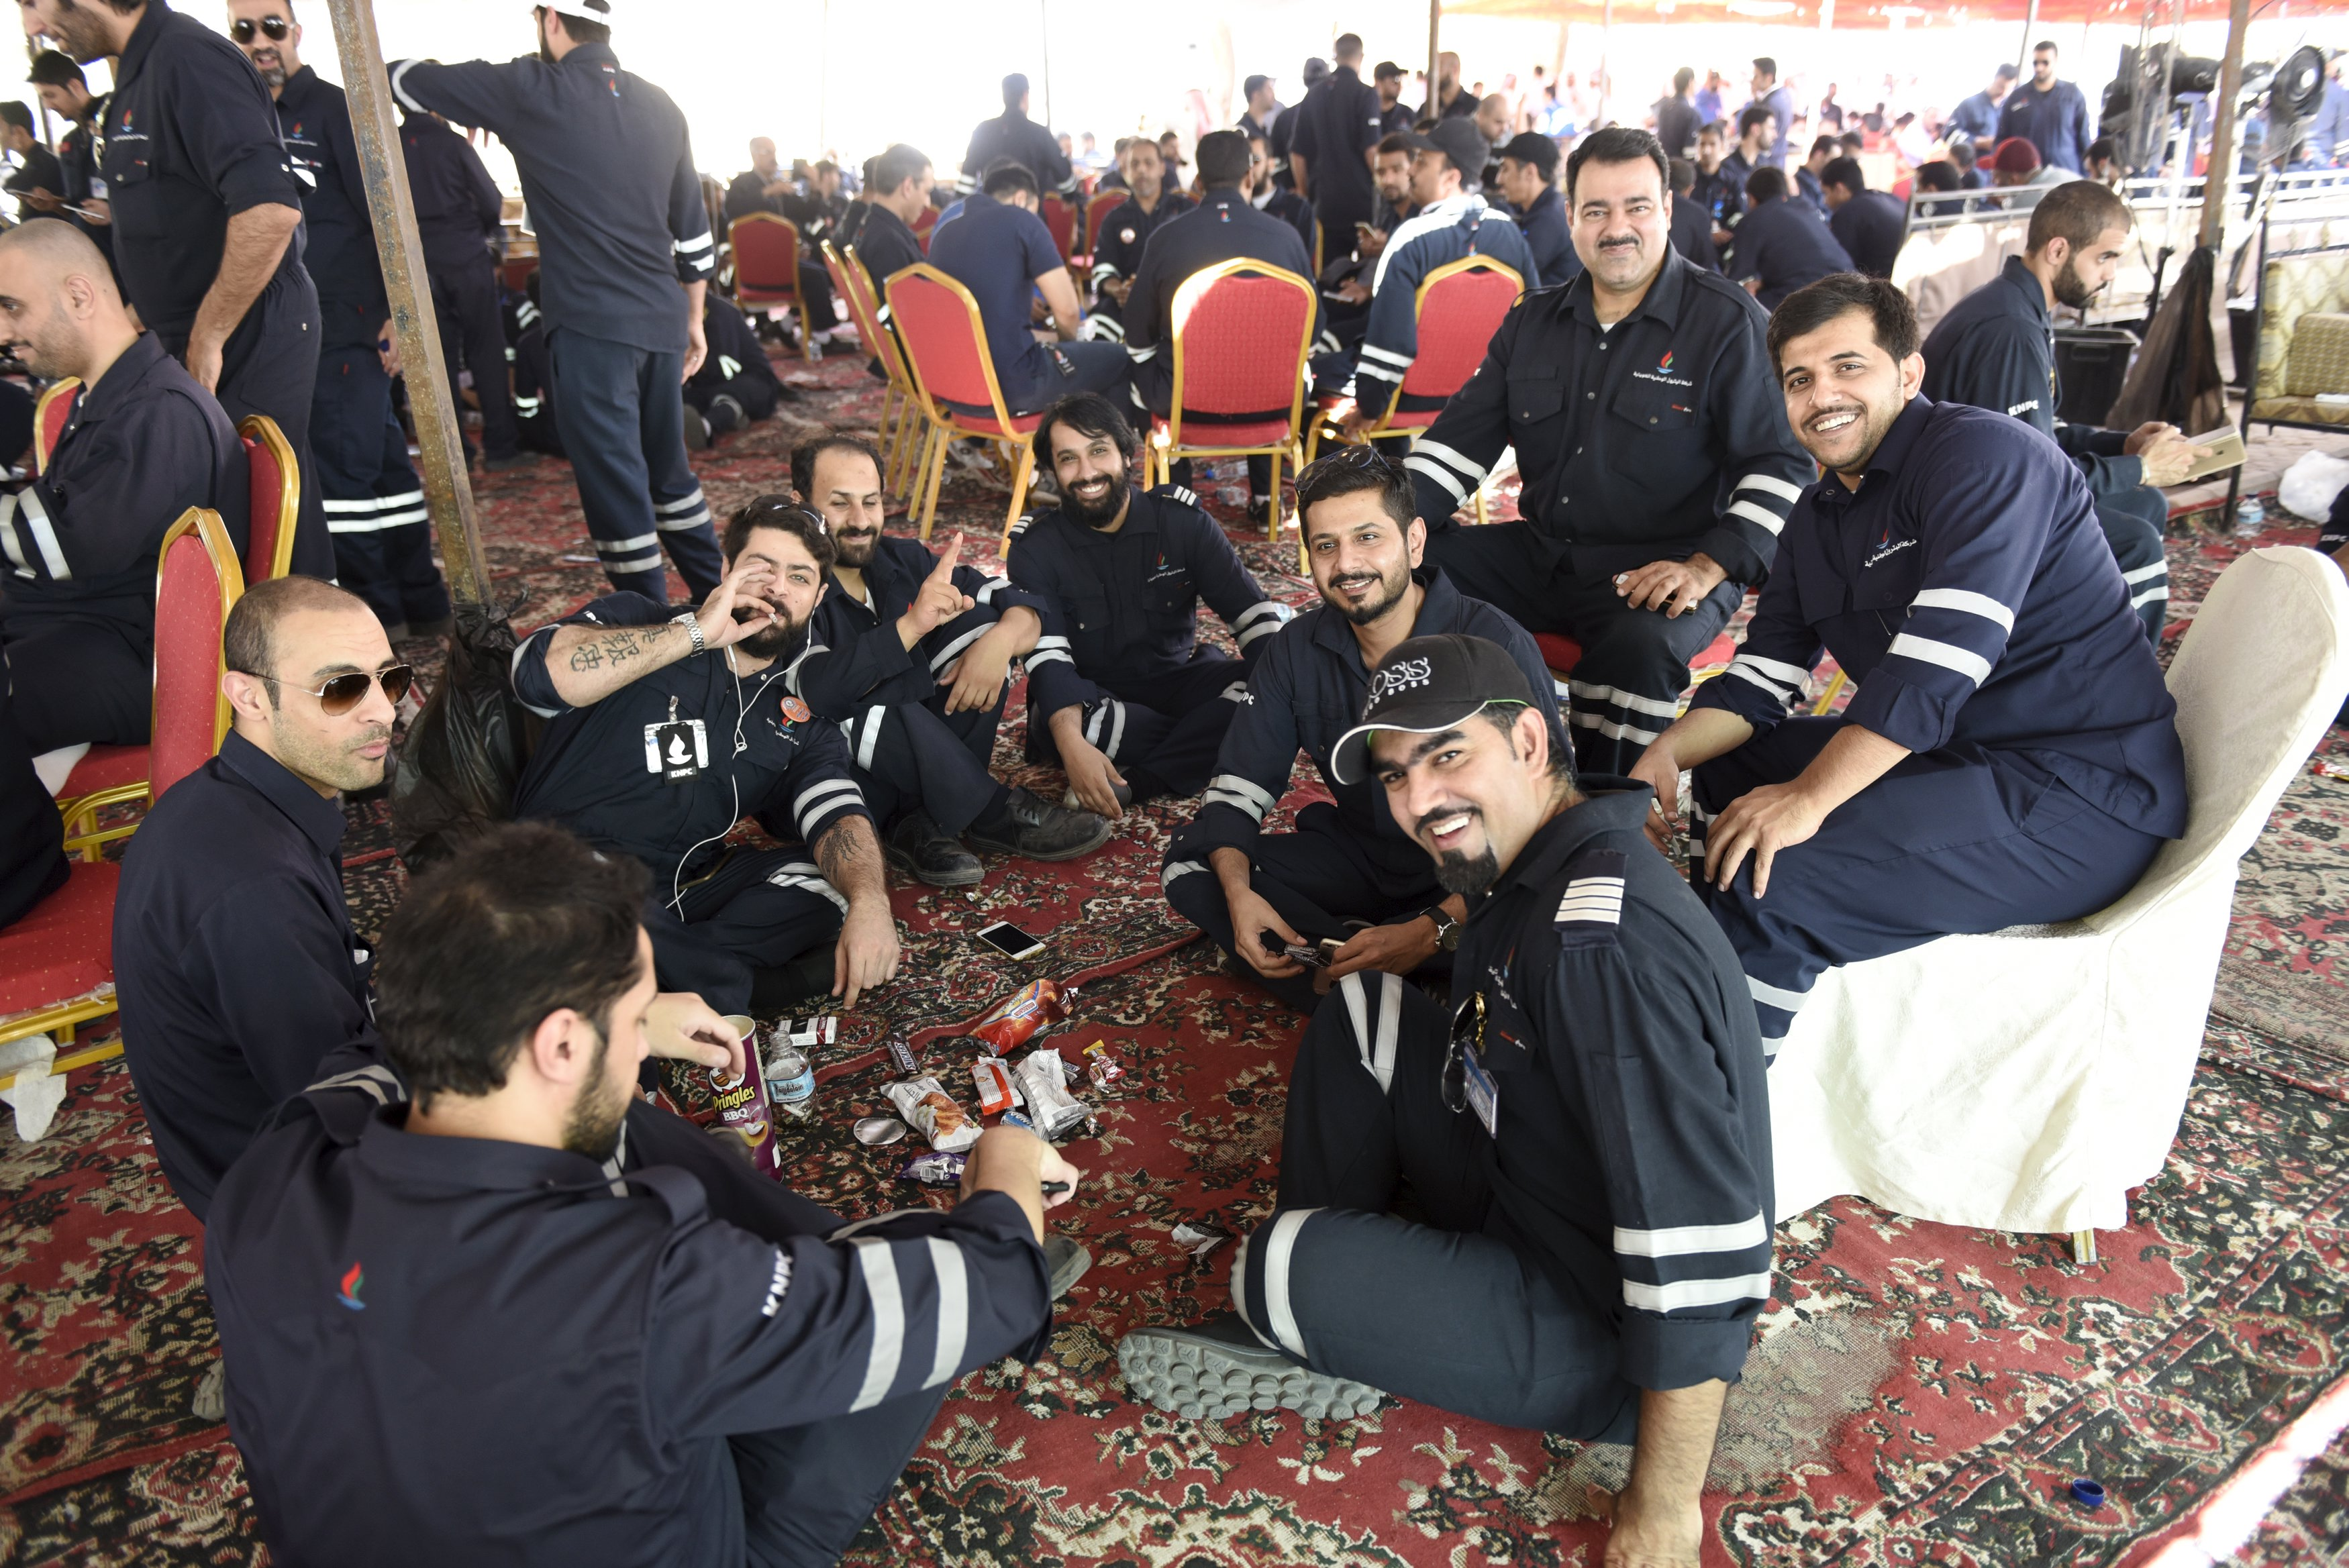 Kuwaiti oil sector employees sit in a shaded area on the first day of an official strike called by the Oil and Petrochemical Industries Workers Union over public sector pay reforms, in Ahmadi